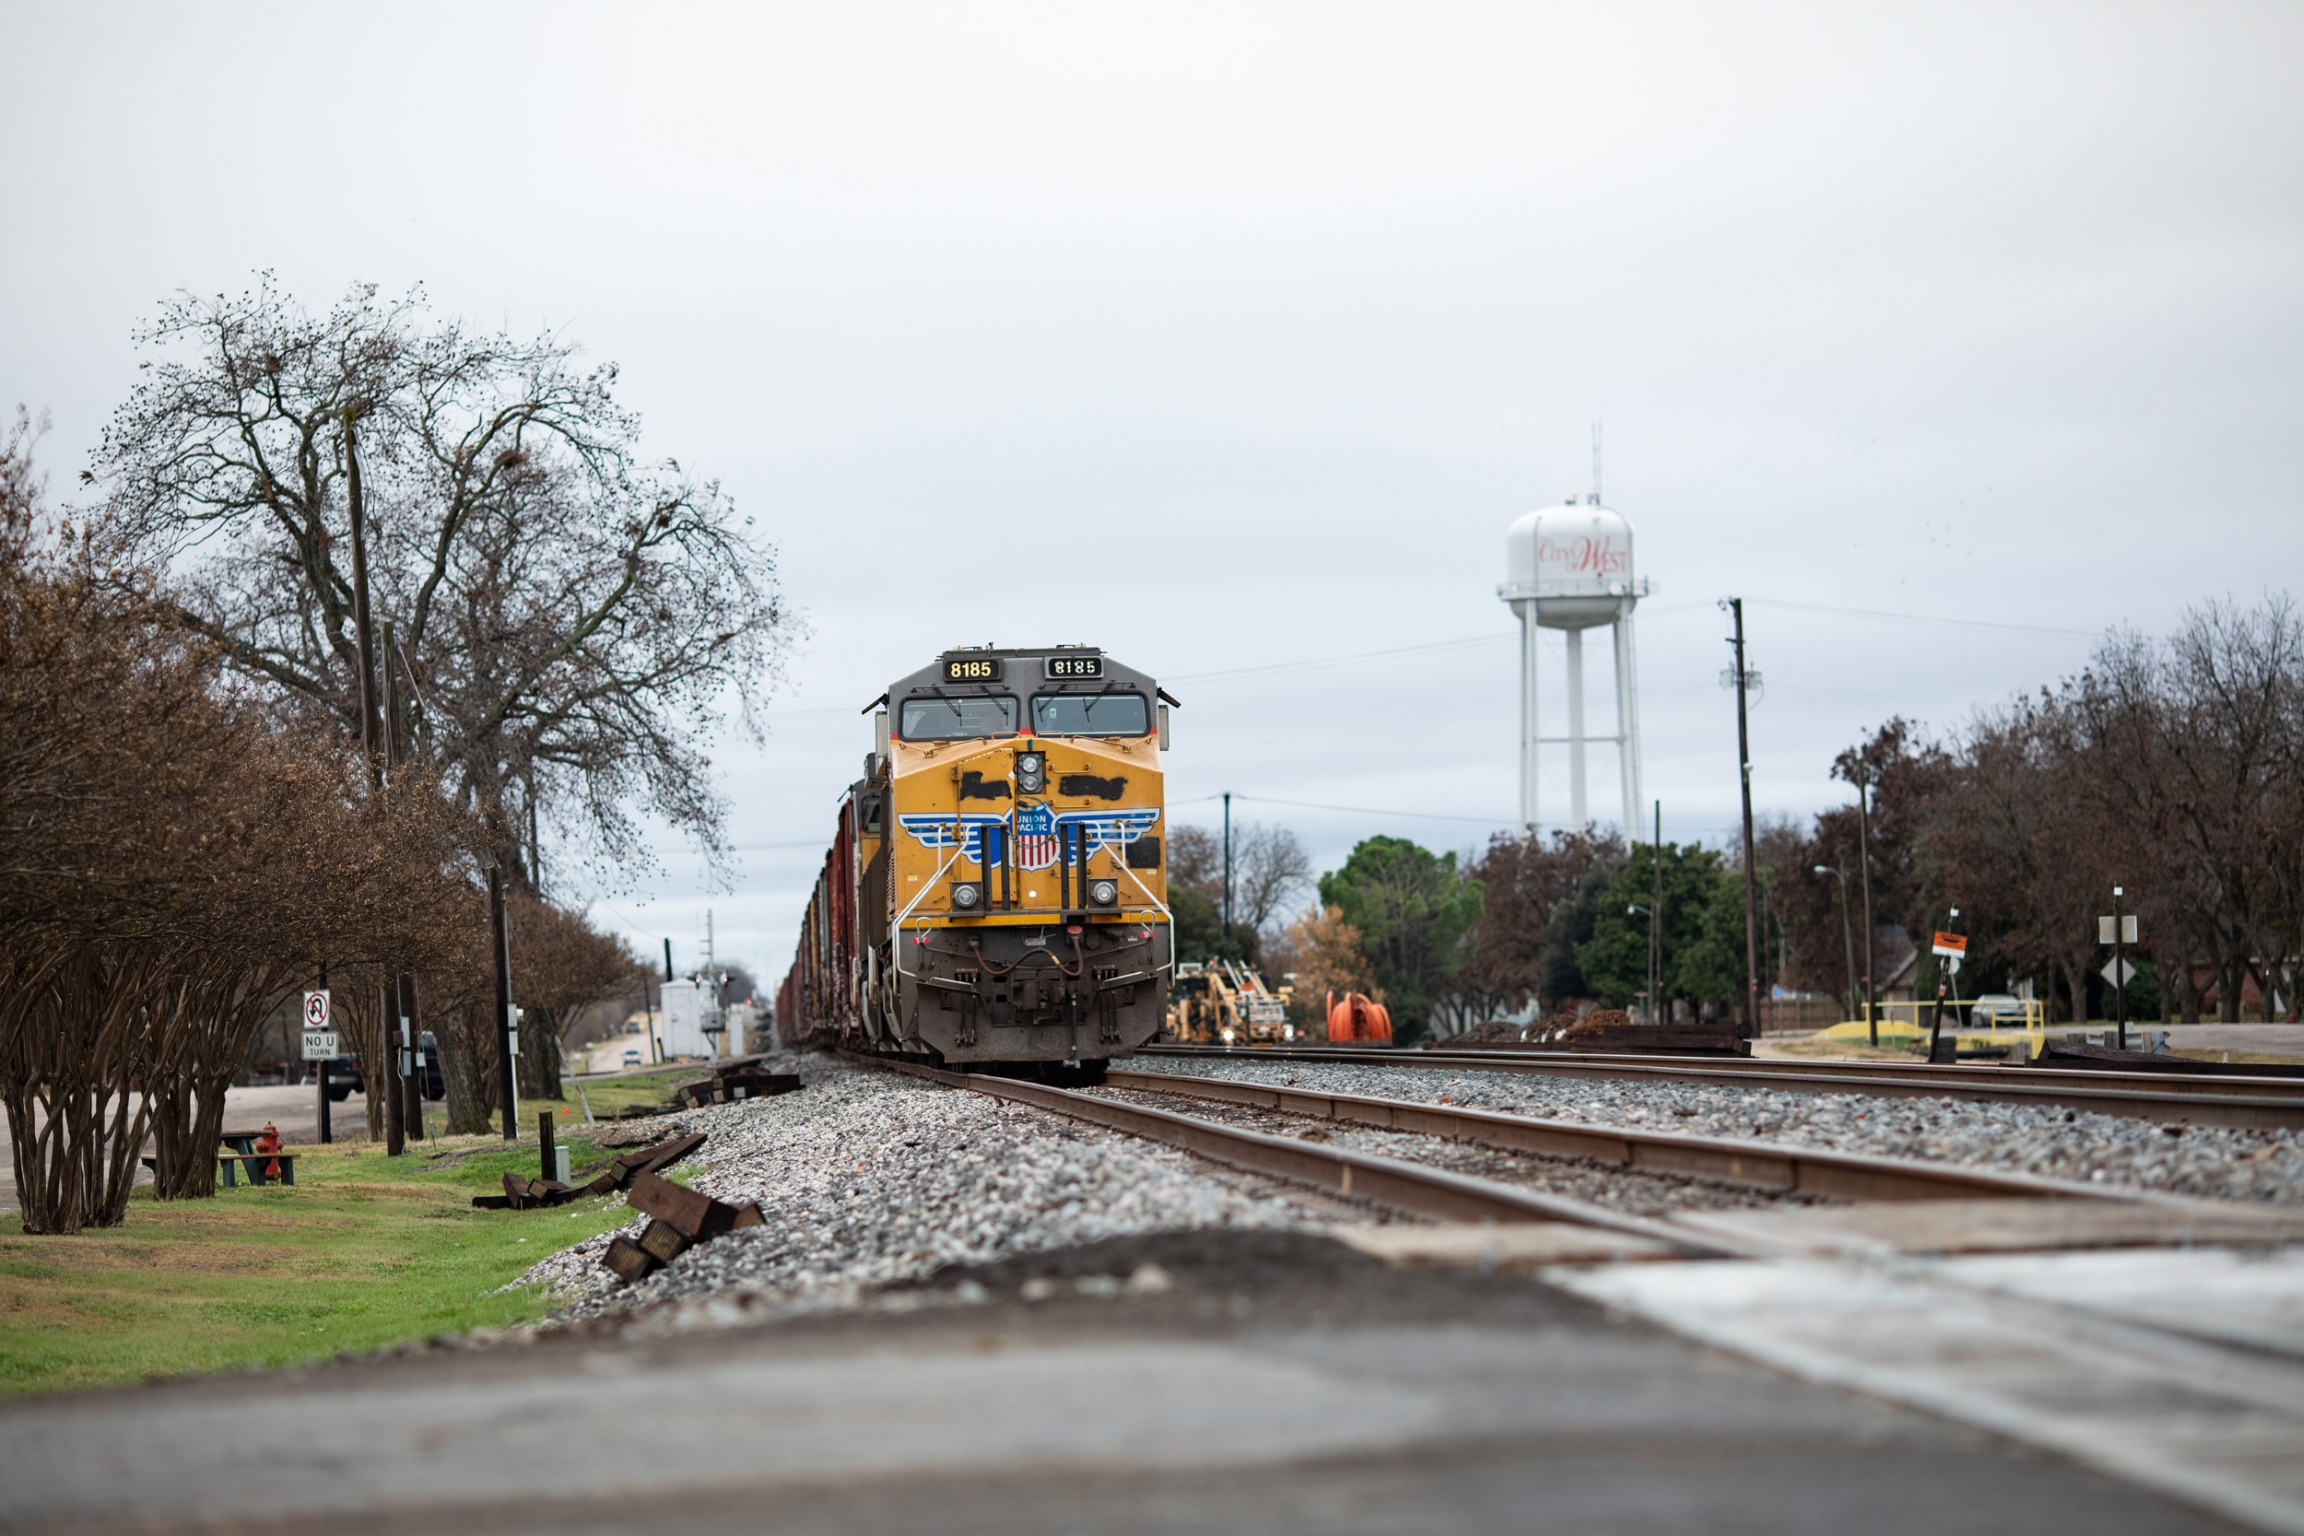 A yellow freight train is shown with a water tower in the background.